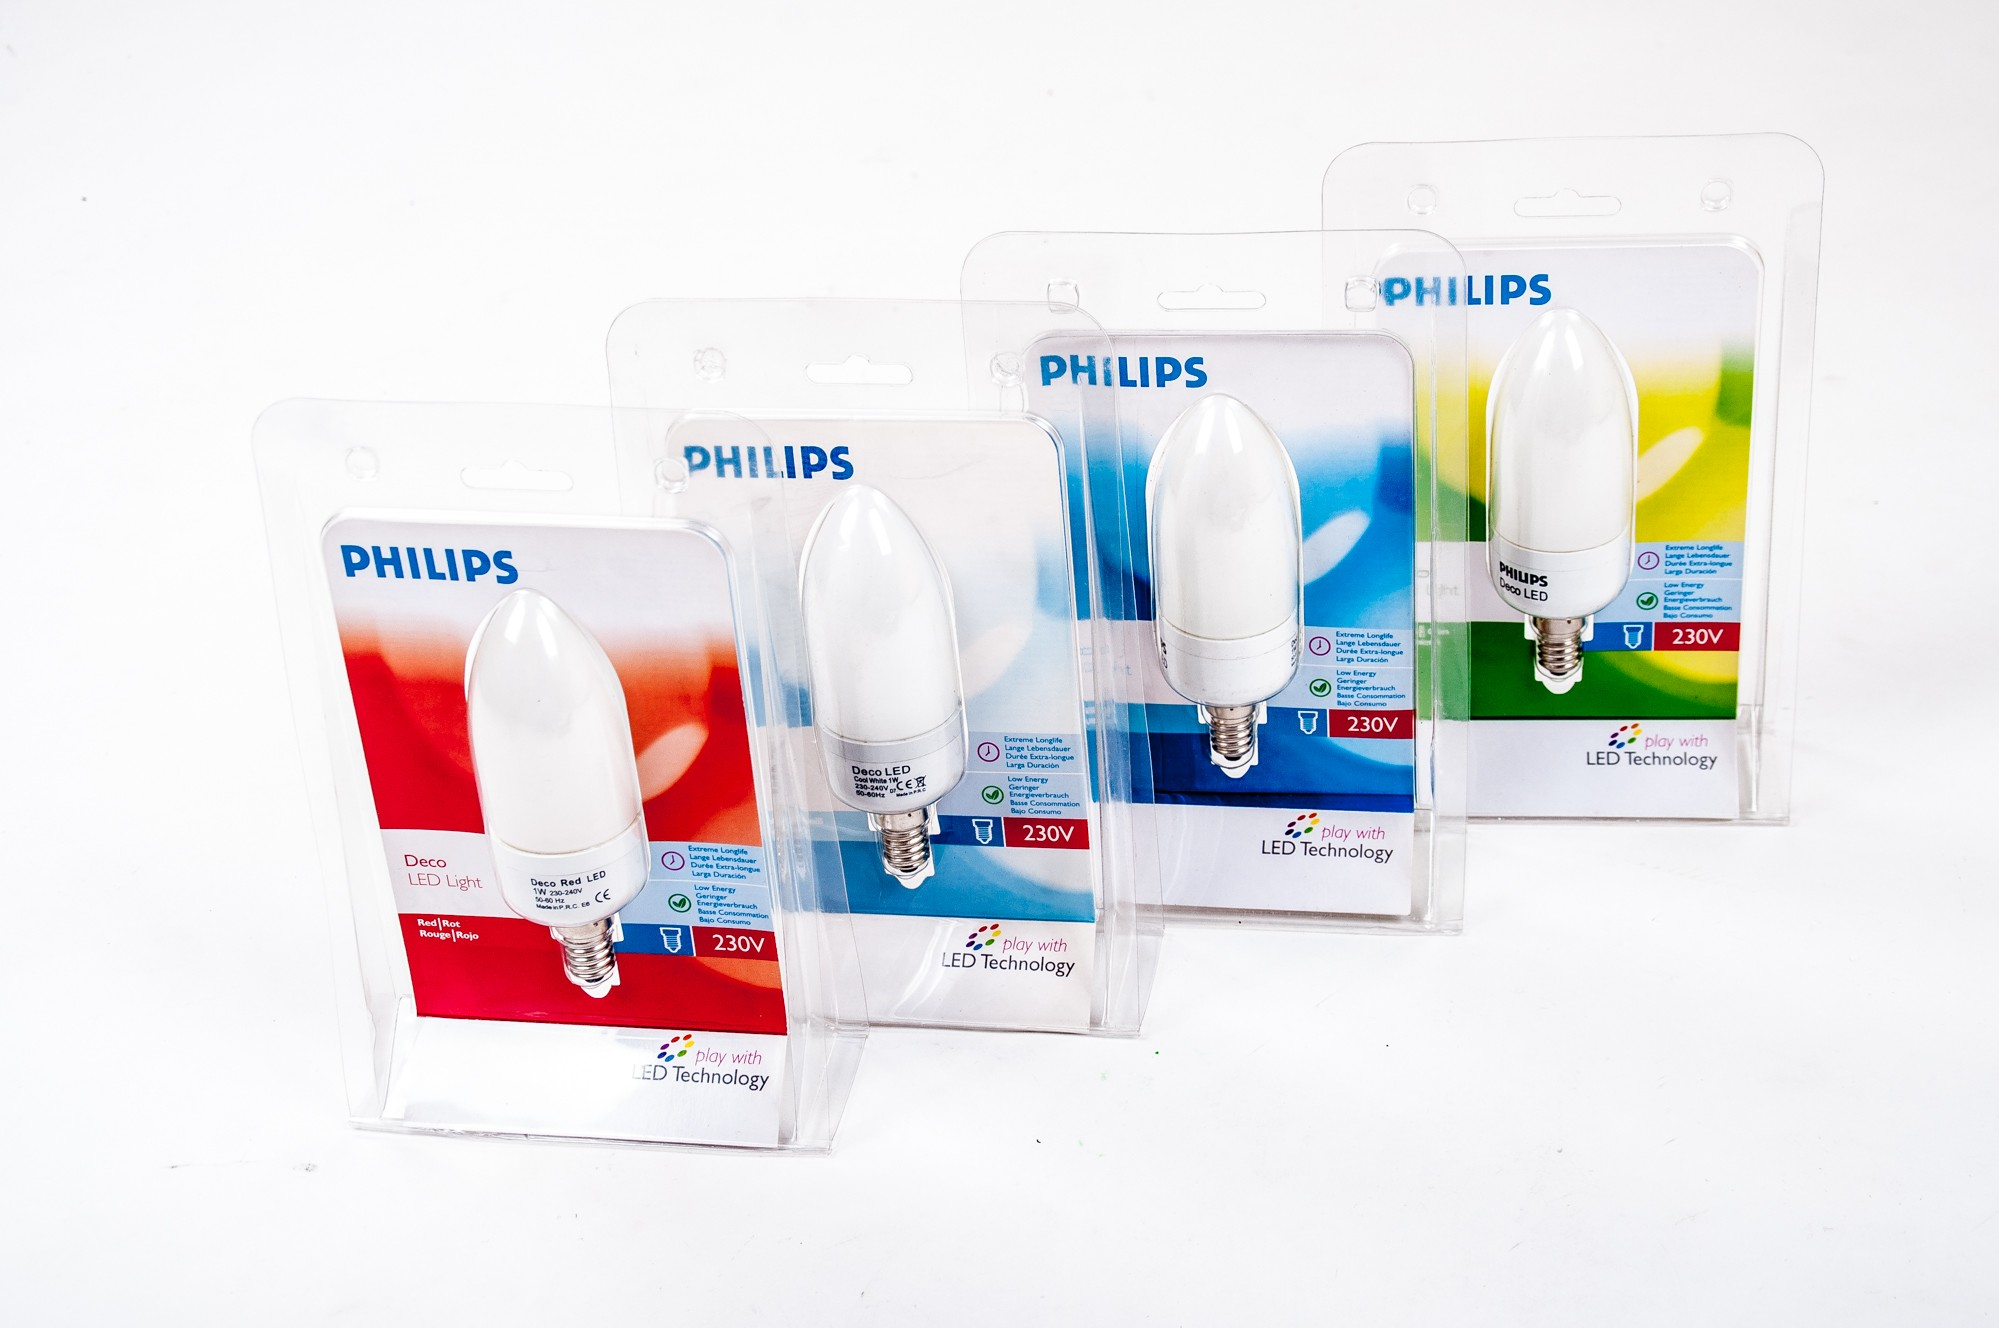 Philips-Deco-LED-Light-E14-Kerze-1W-Lichterkette-Lampe-Energiesparlampe-Leuchte